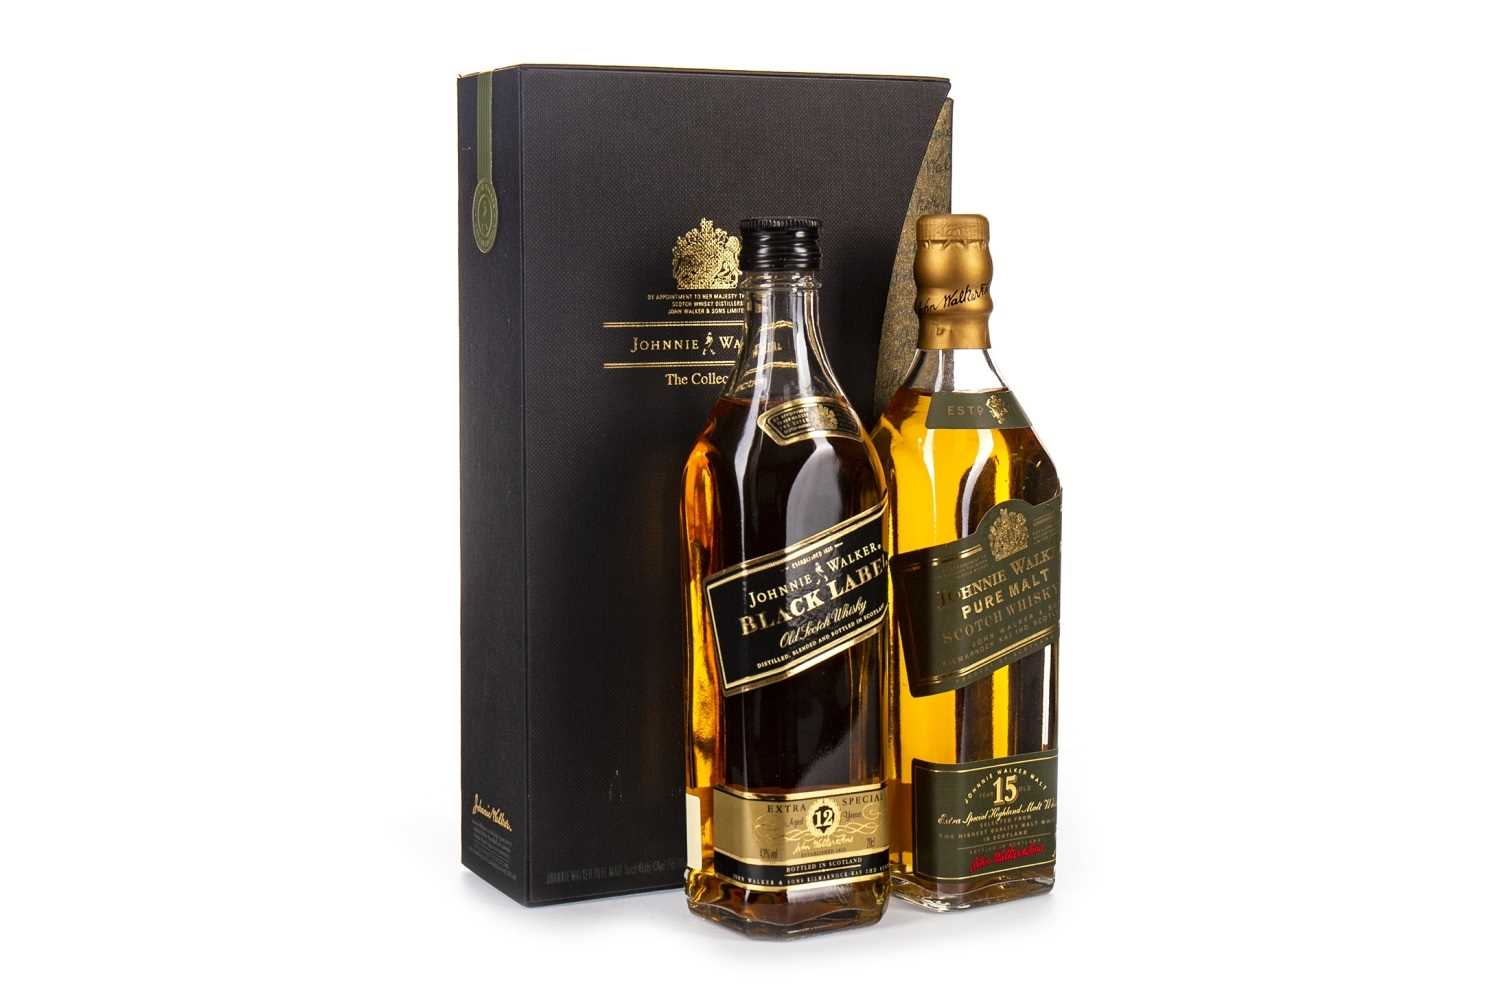 Lot 410-JOHNNIE WALKER THE COLLECTION - 2x20CL